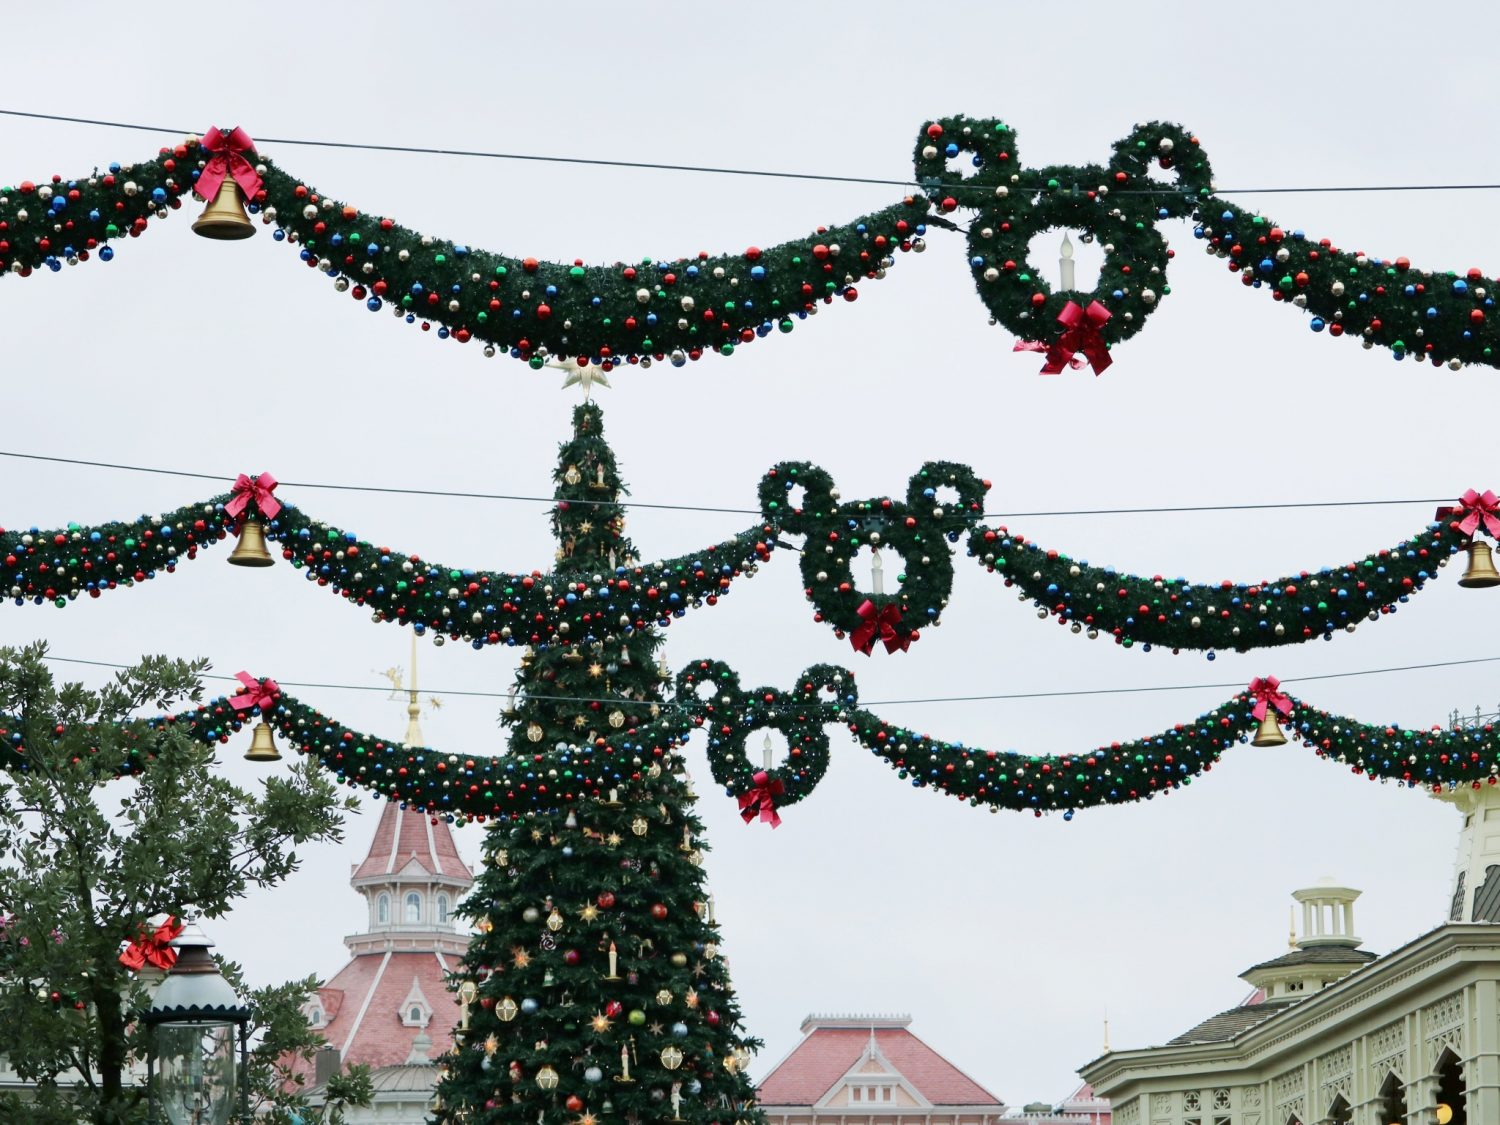 Disneyland Paris Christmas Wreaths